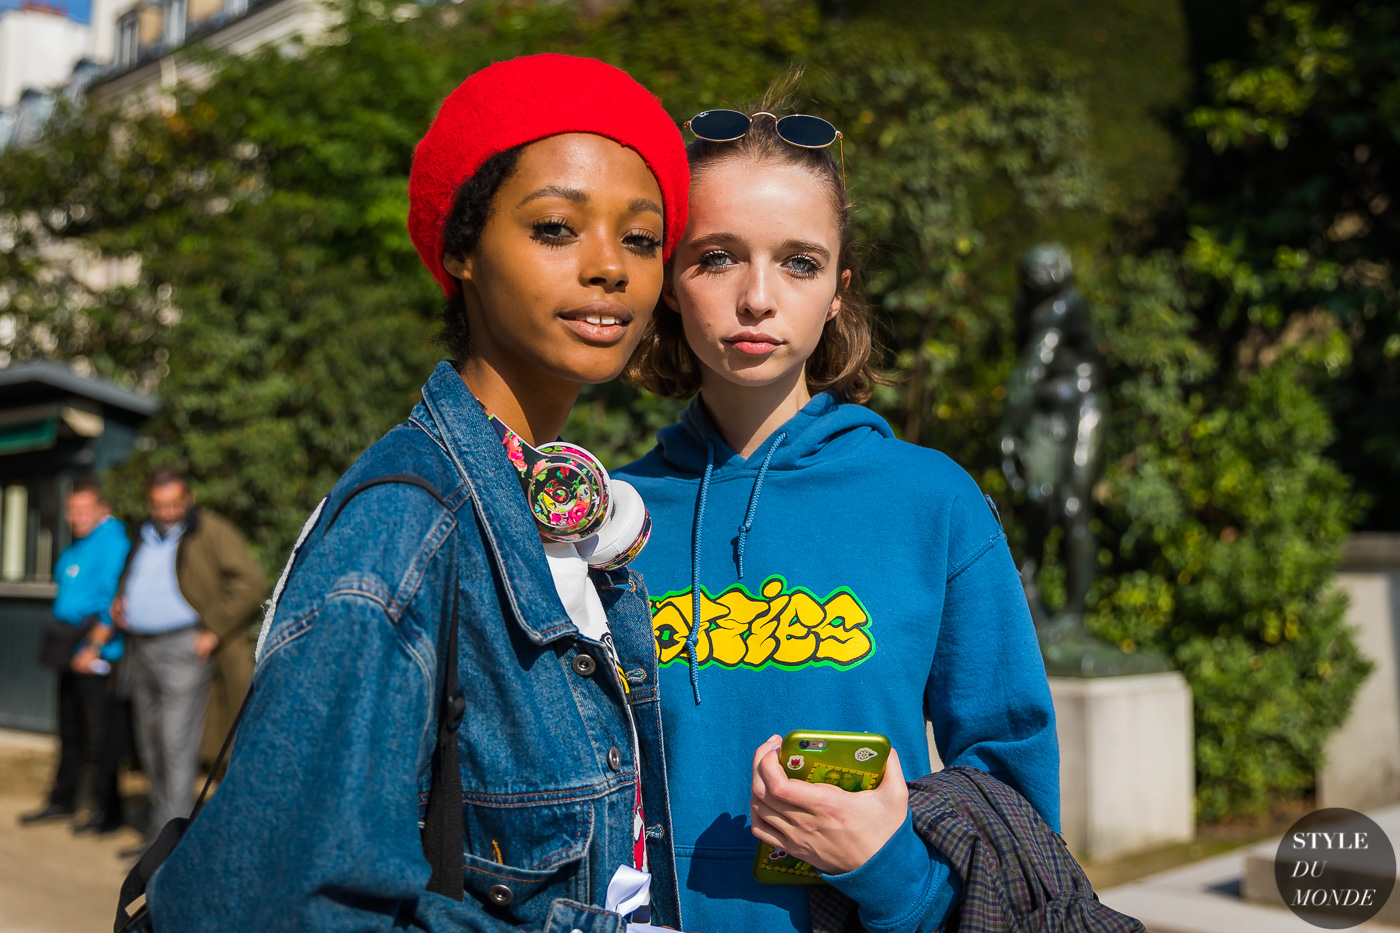 Models Londone Myers and Olivia Forte after the Dior SS18 show